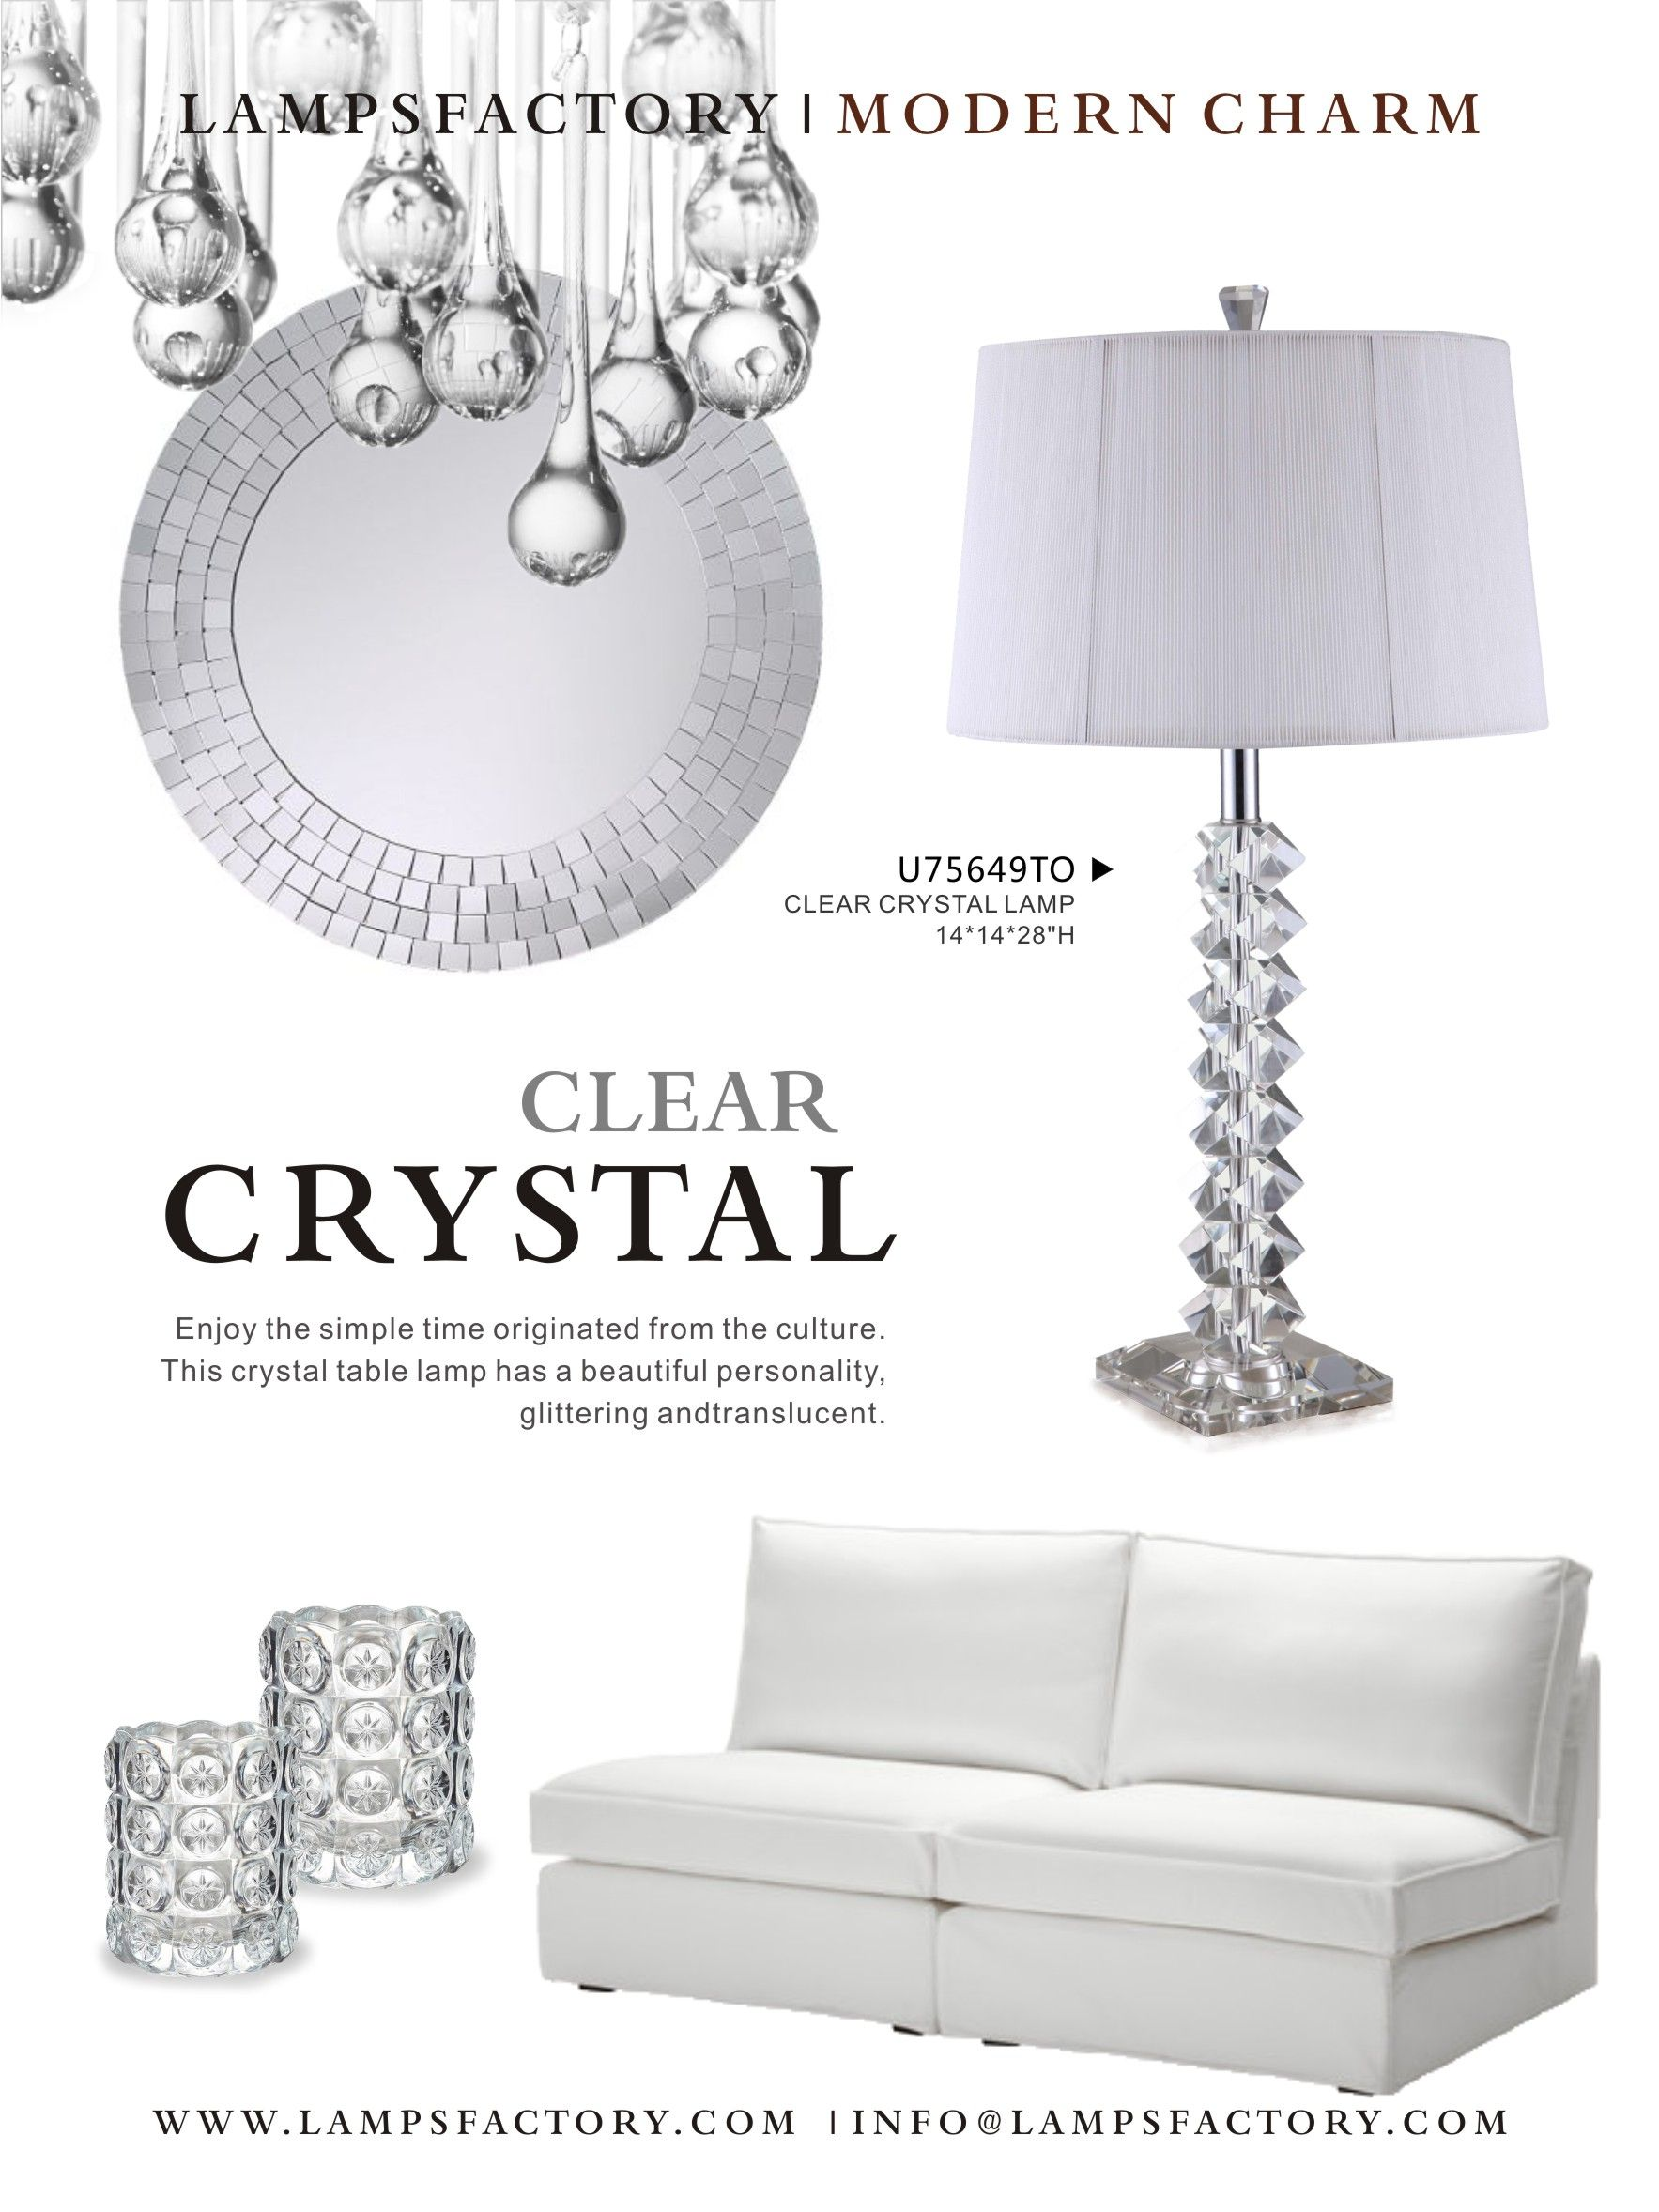 Enjoy the simple time originated from the culture.the crystal table lamp has a beautiful personality,glittering and translucent.